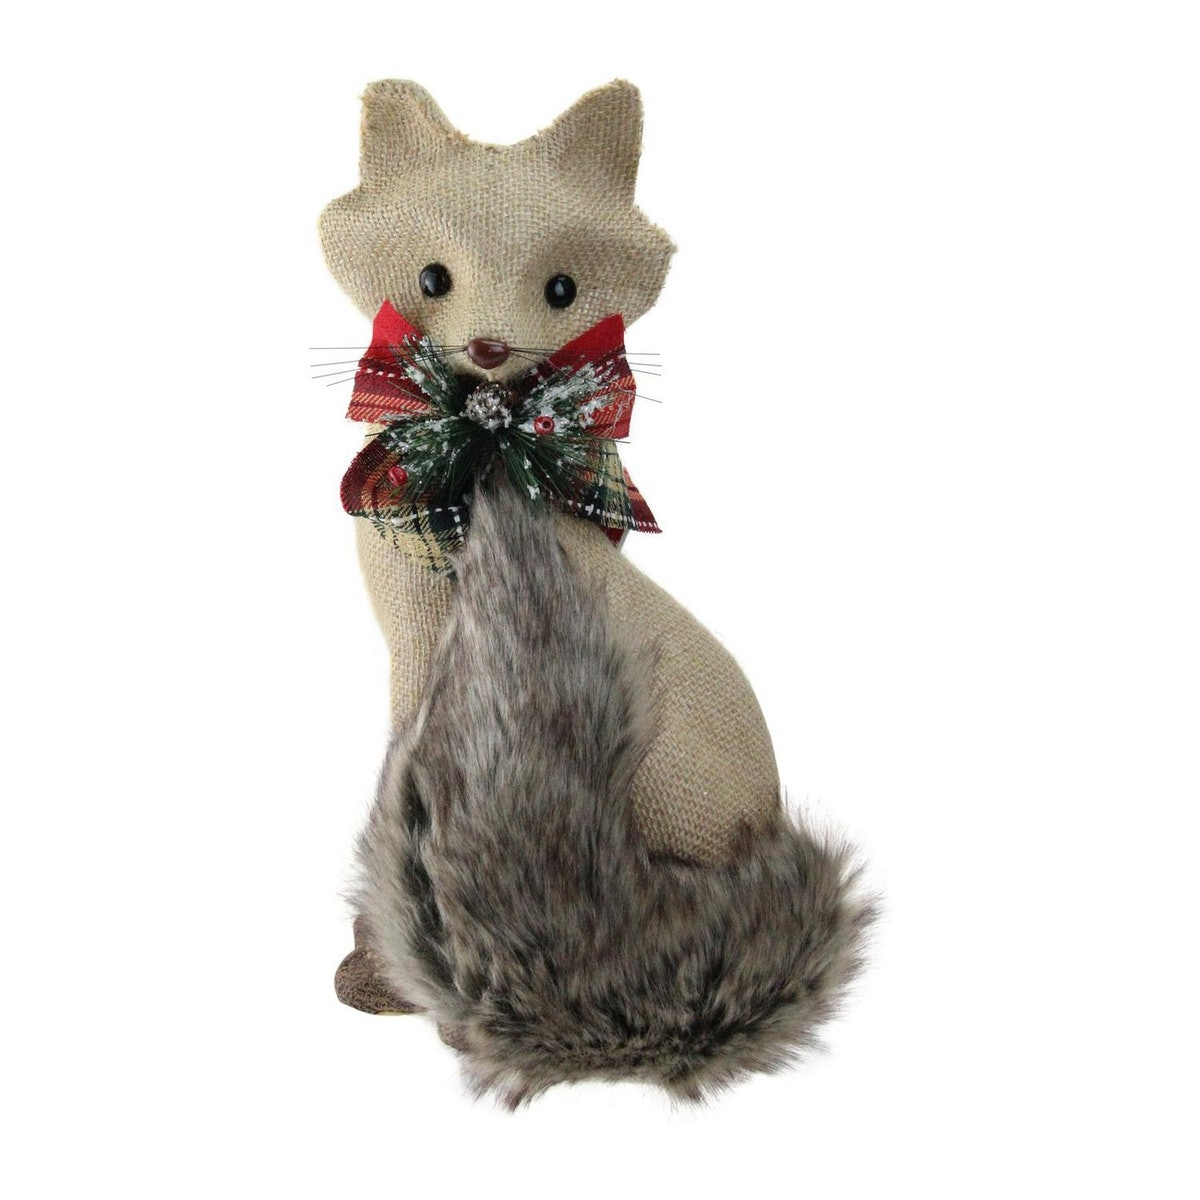 Northlight Sitting Brown Fox with Tail Curled Christmas Decoration